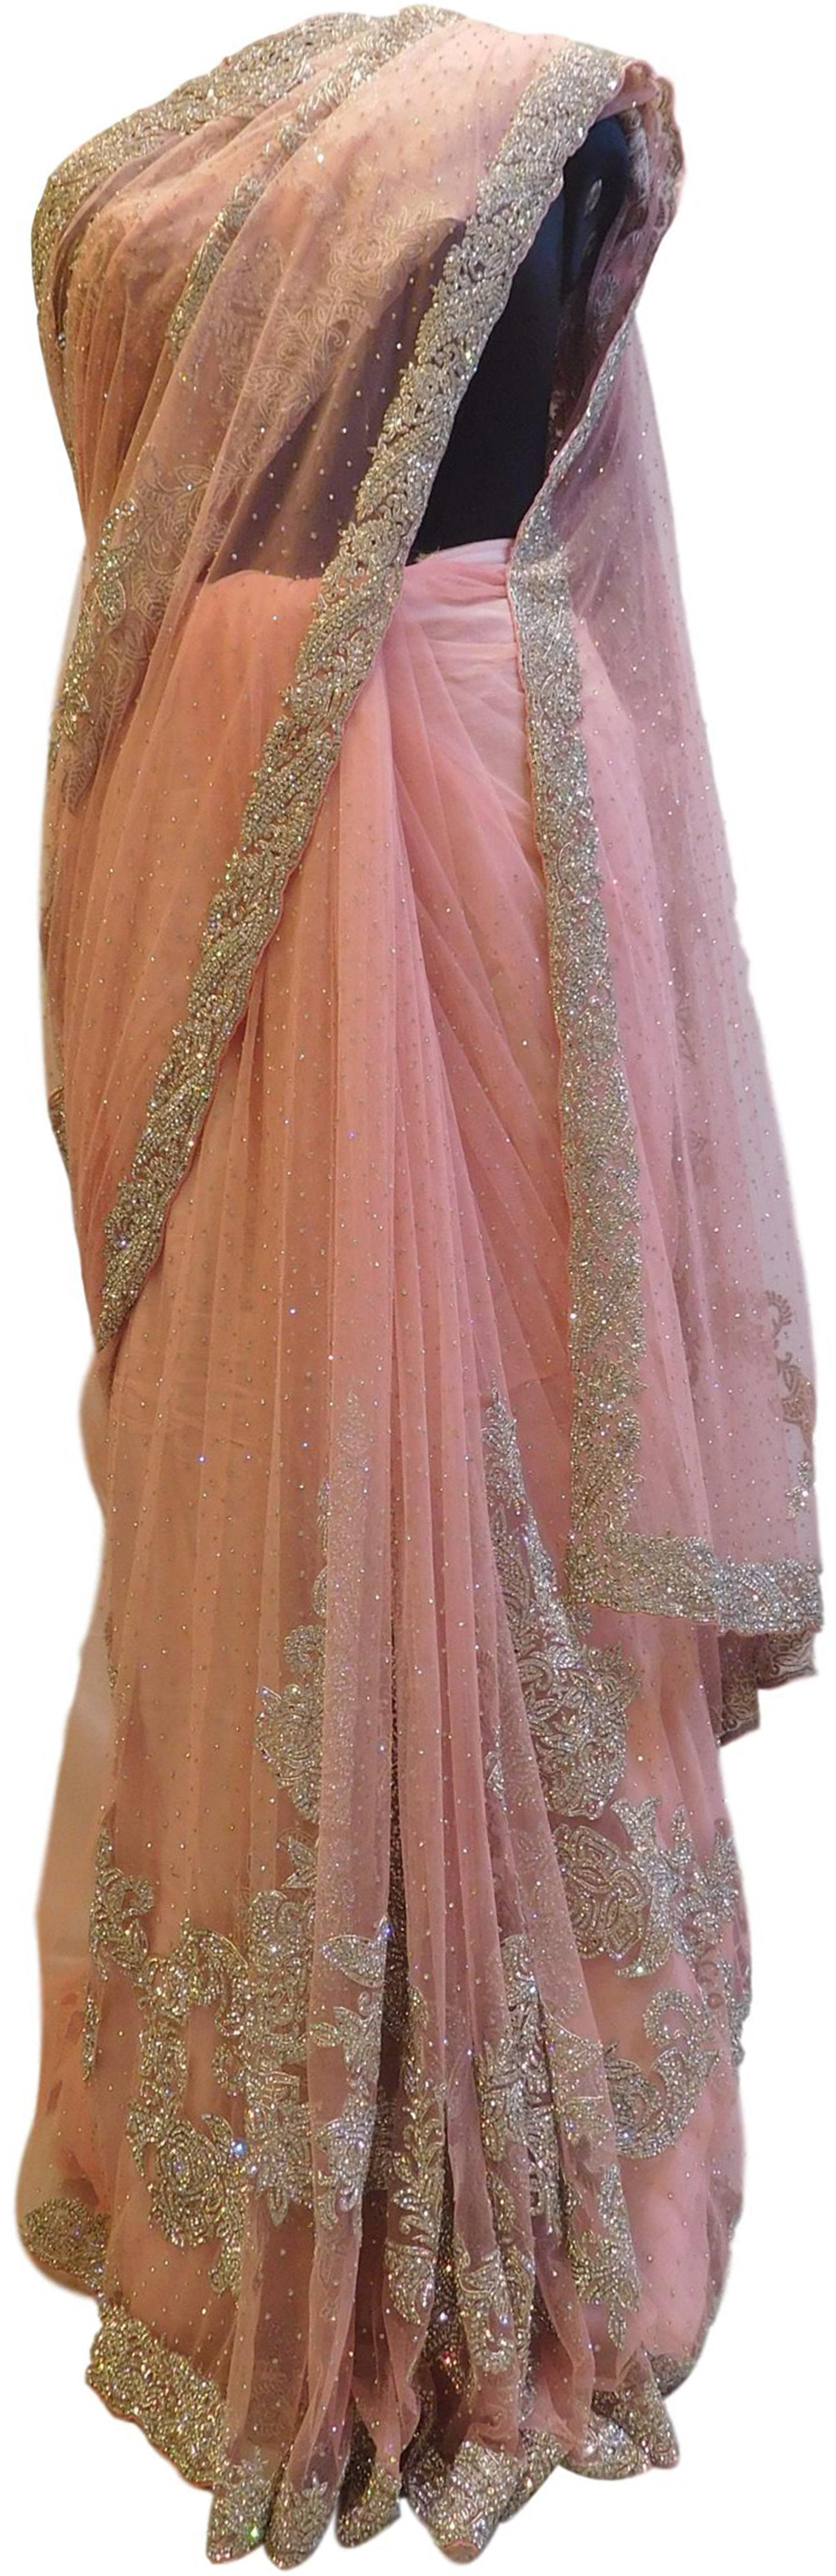 Pink Designer Wedding Partywear Net Bullion Sequence Stone Hand Embroidery CutWork Border Bridal Saree Sari